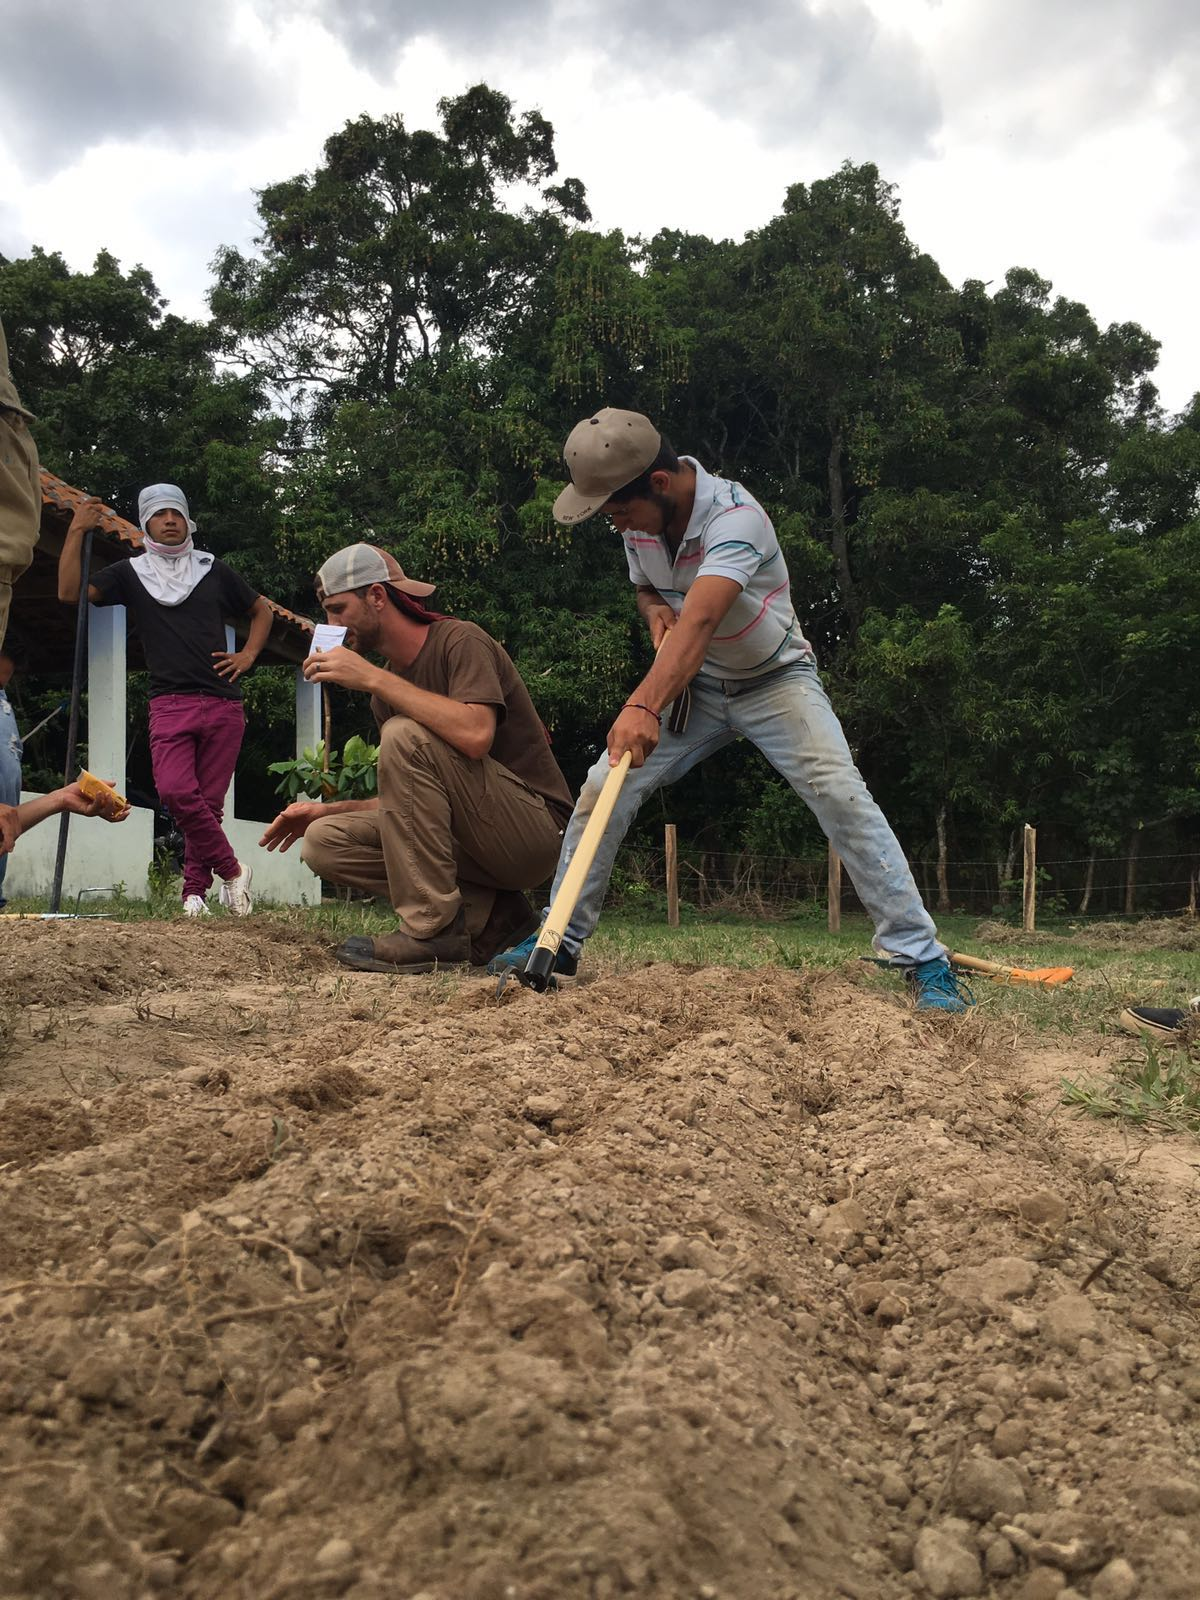 Workshop participants gained hands-on teaching on our organizational plot, and help implementing what they learned on their own land.